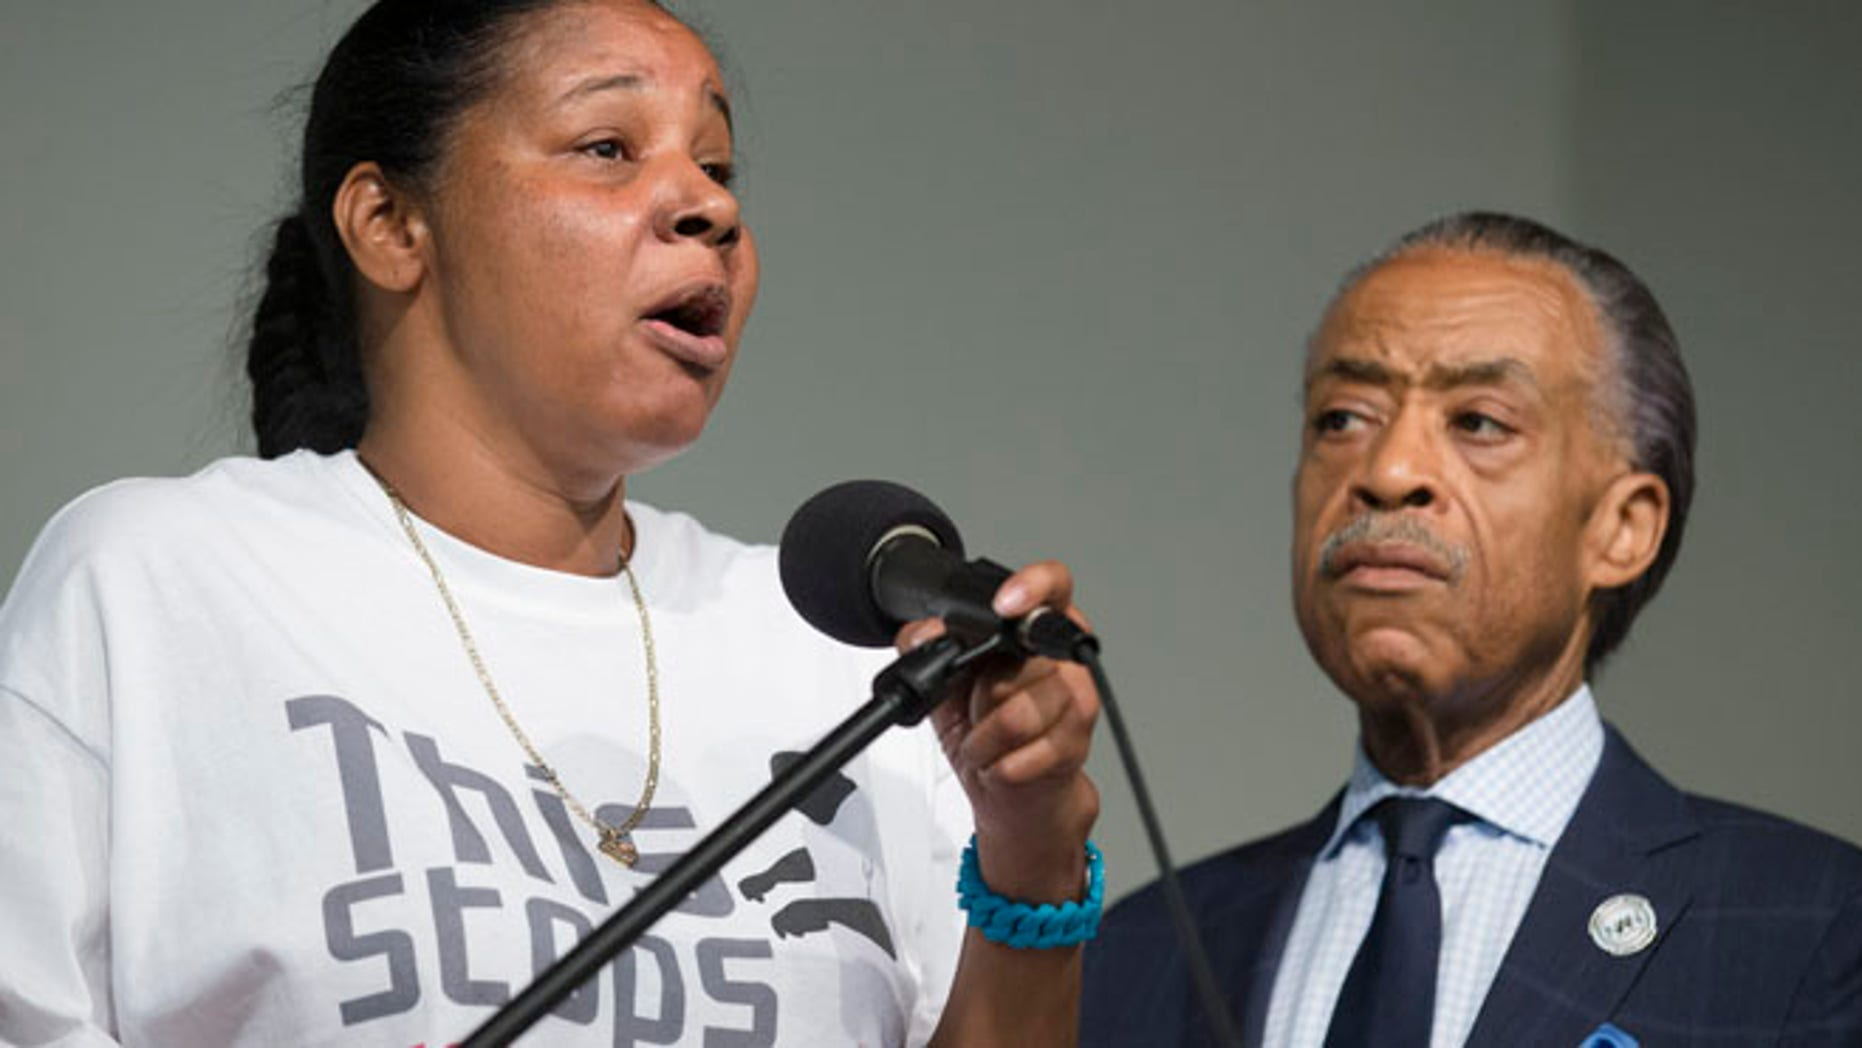 July 26, 2014: Esaw Garner, wife of Eric Garner, left, speaks alongside the Rev. Al Sharpton during a rally at the National Action Network headquarters in New York.